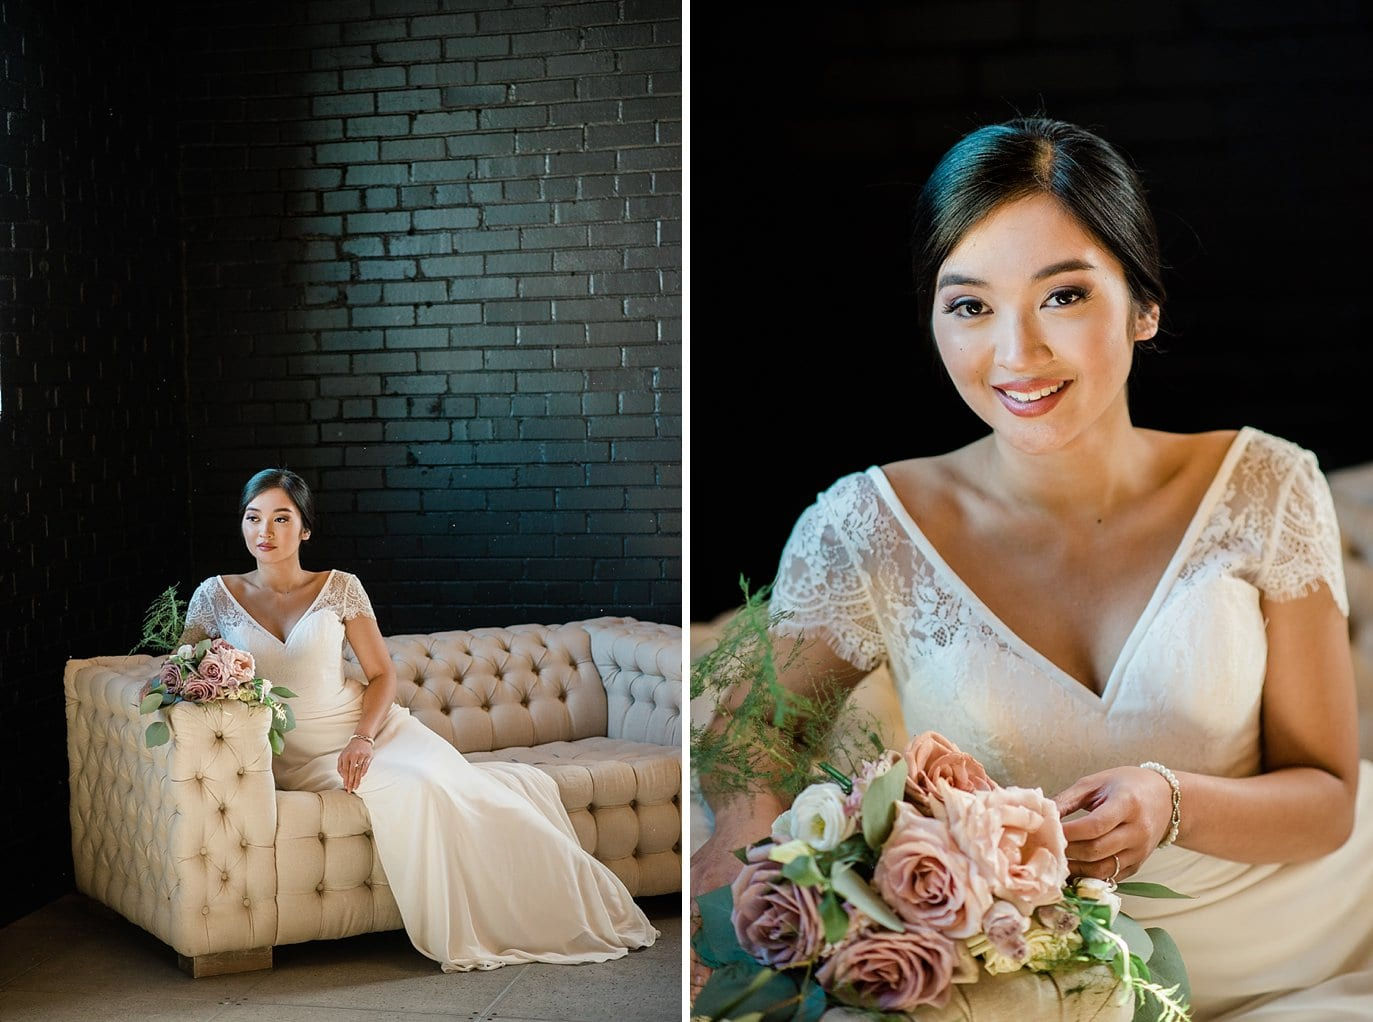 bride in lace and chiffon wedding dress on ivory couch in front of black wall at Shyft Denver wedding by Lyons wedding photographer Jennie Crate